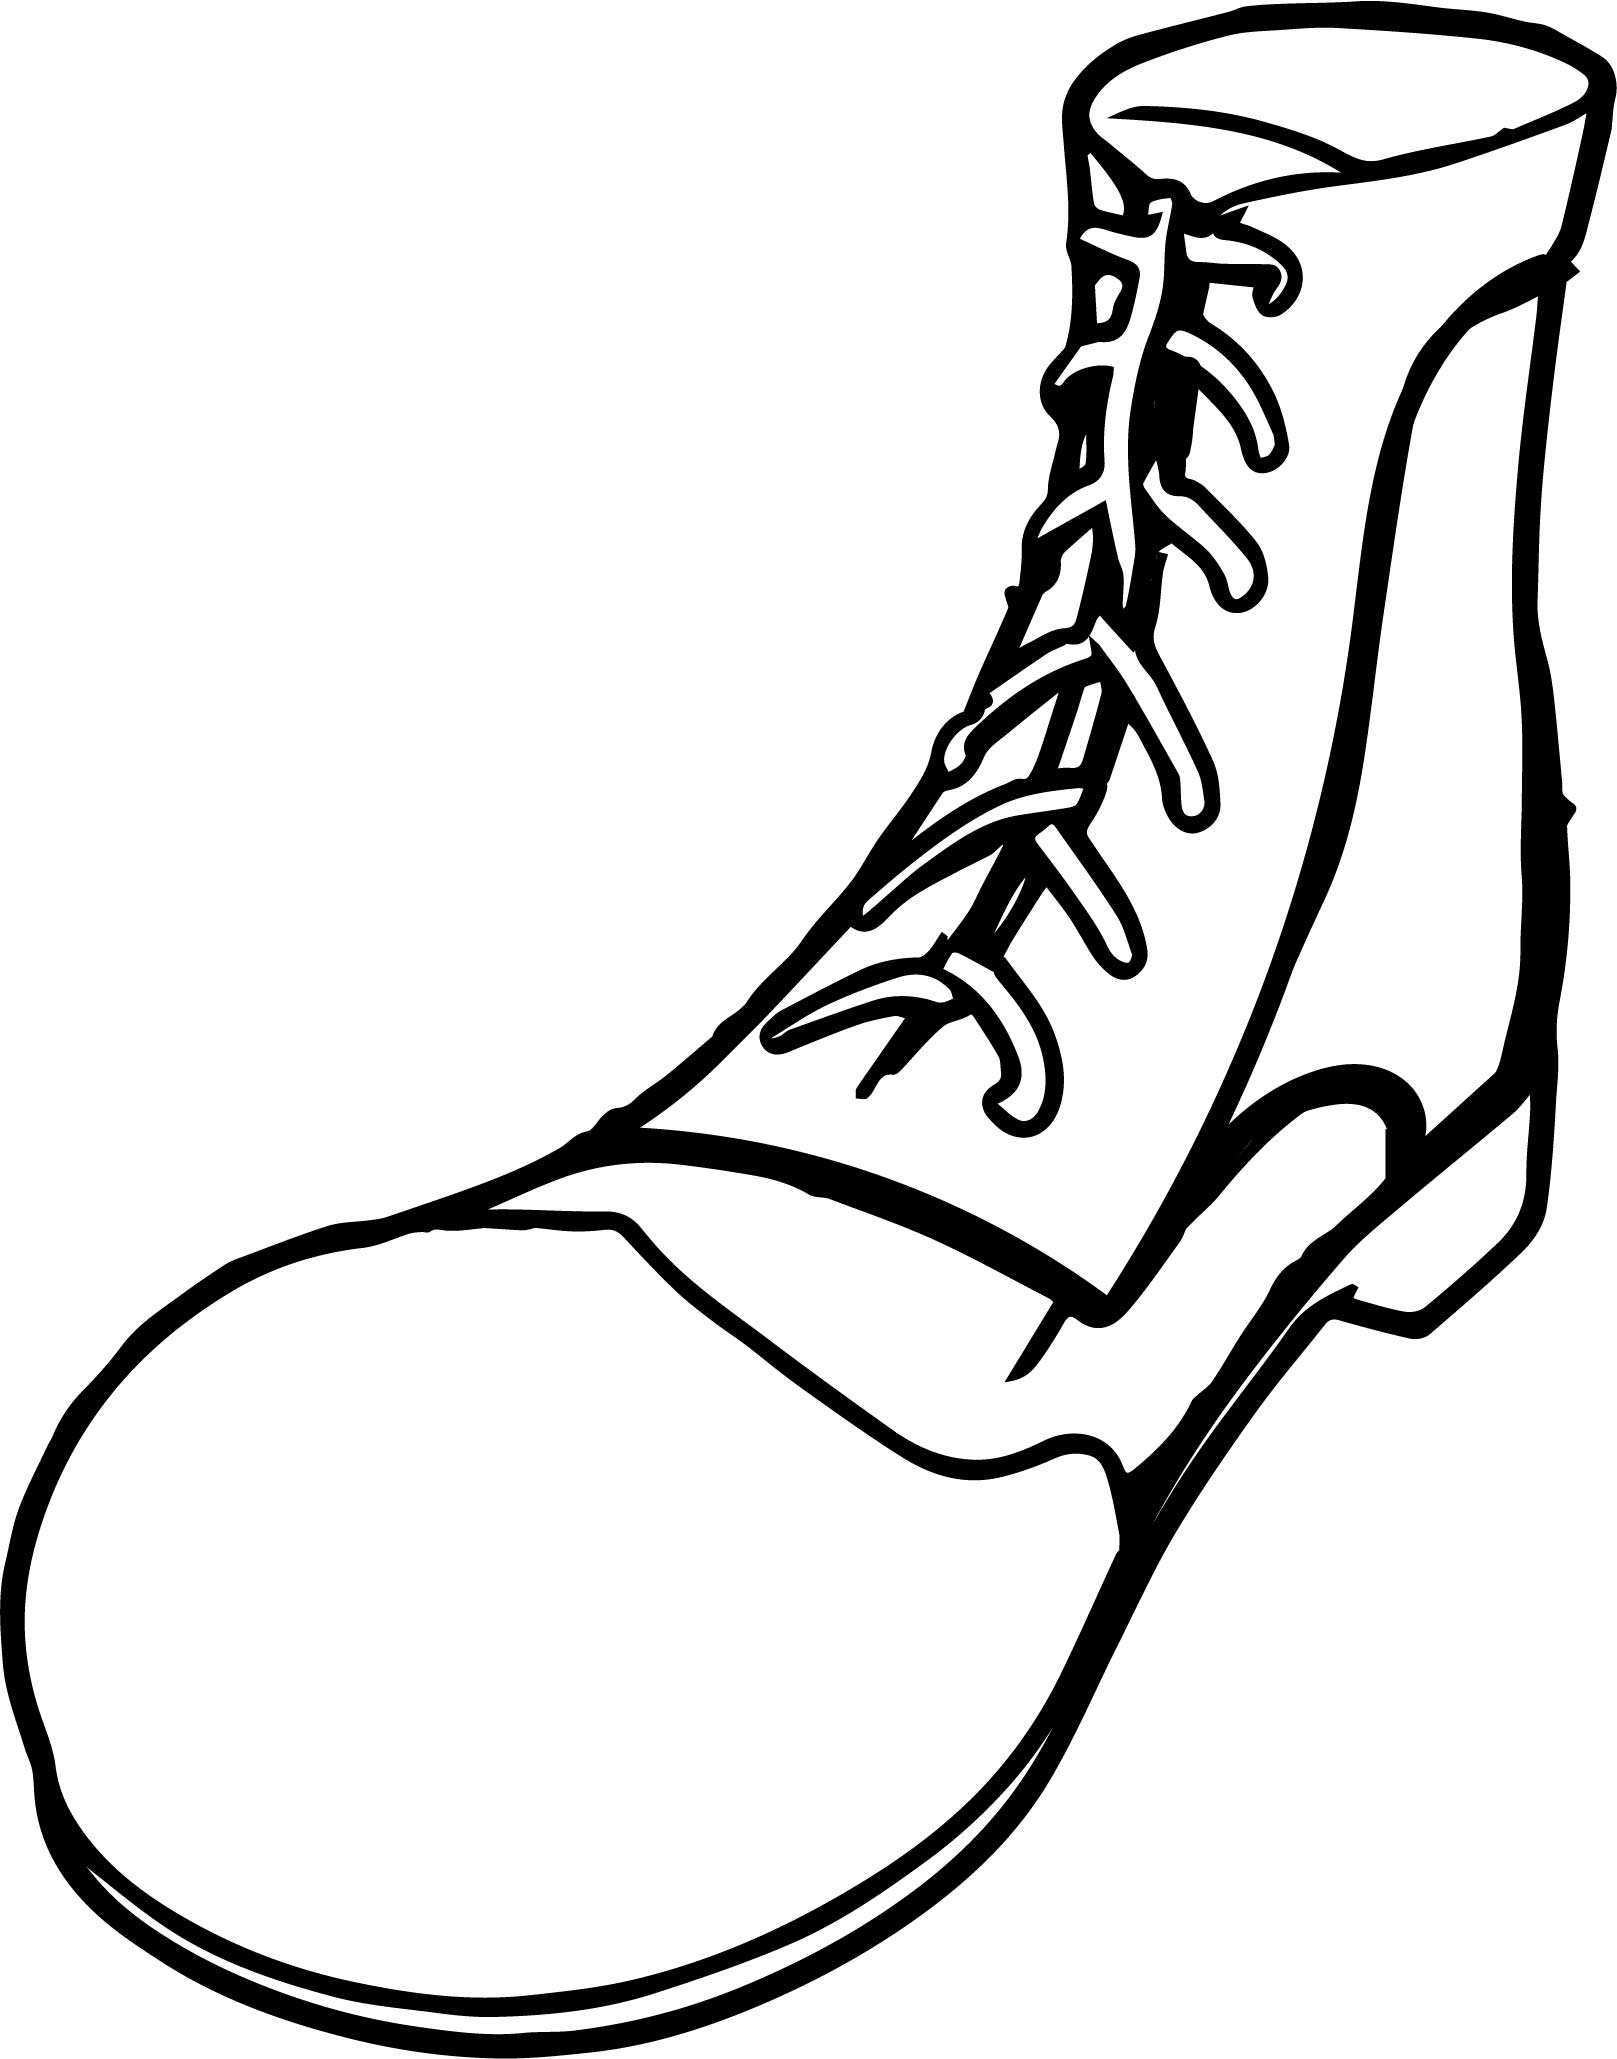 Clown Shoes Coloring Page